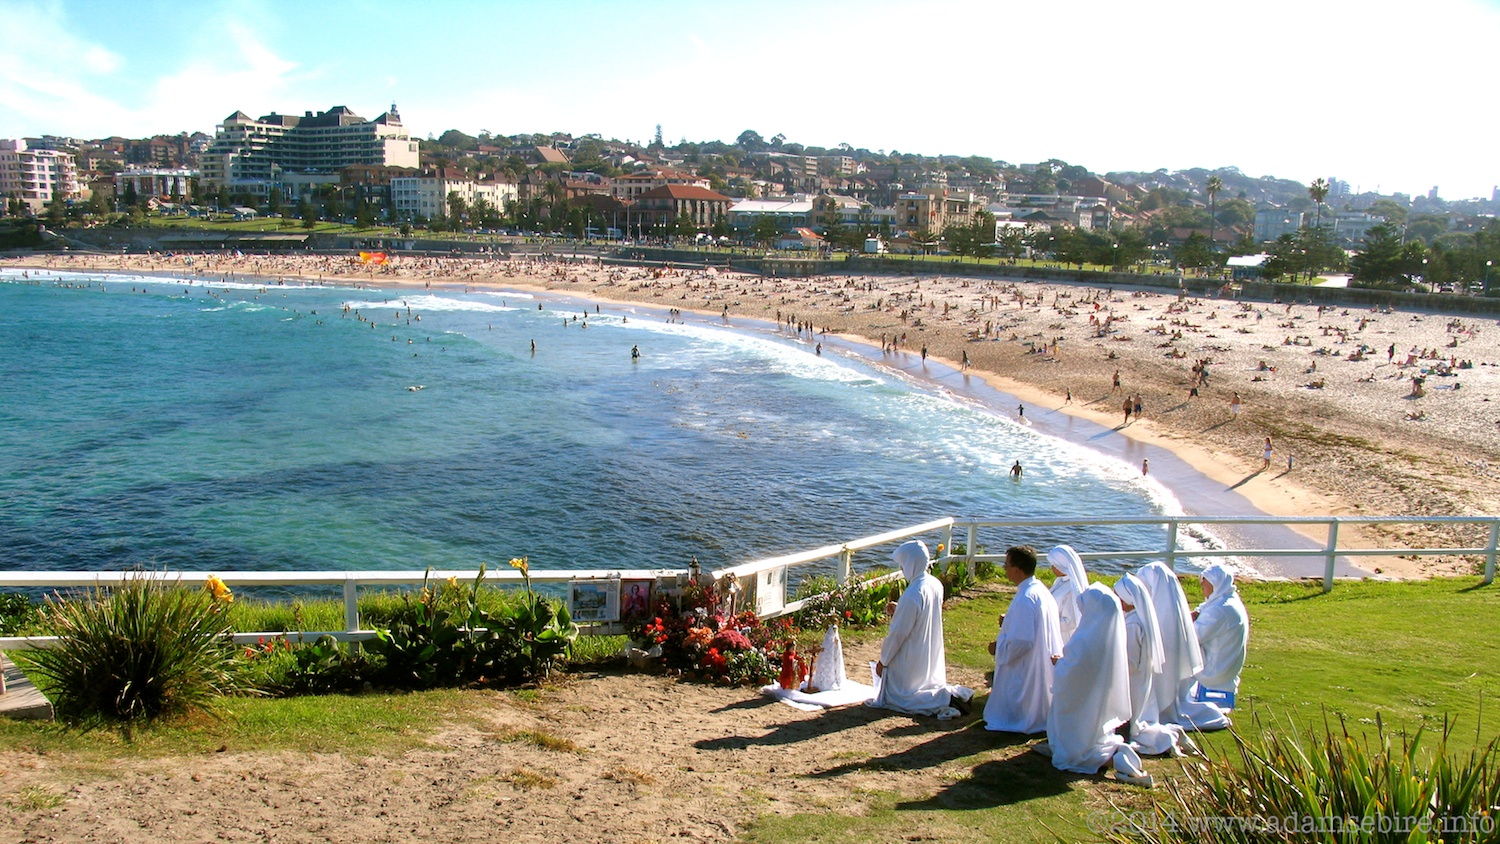 Praying to an apparition of the Blessed Virgin Mary in a fence post, Coogee Beach, Sydney, NSW, Australia